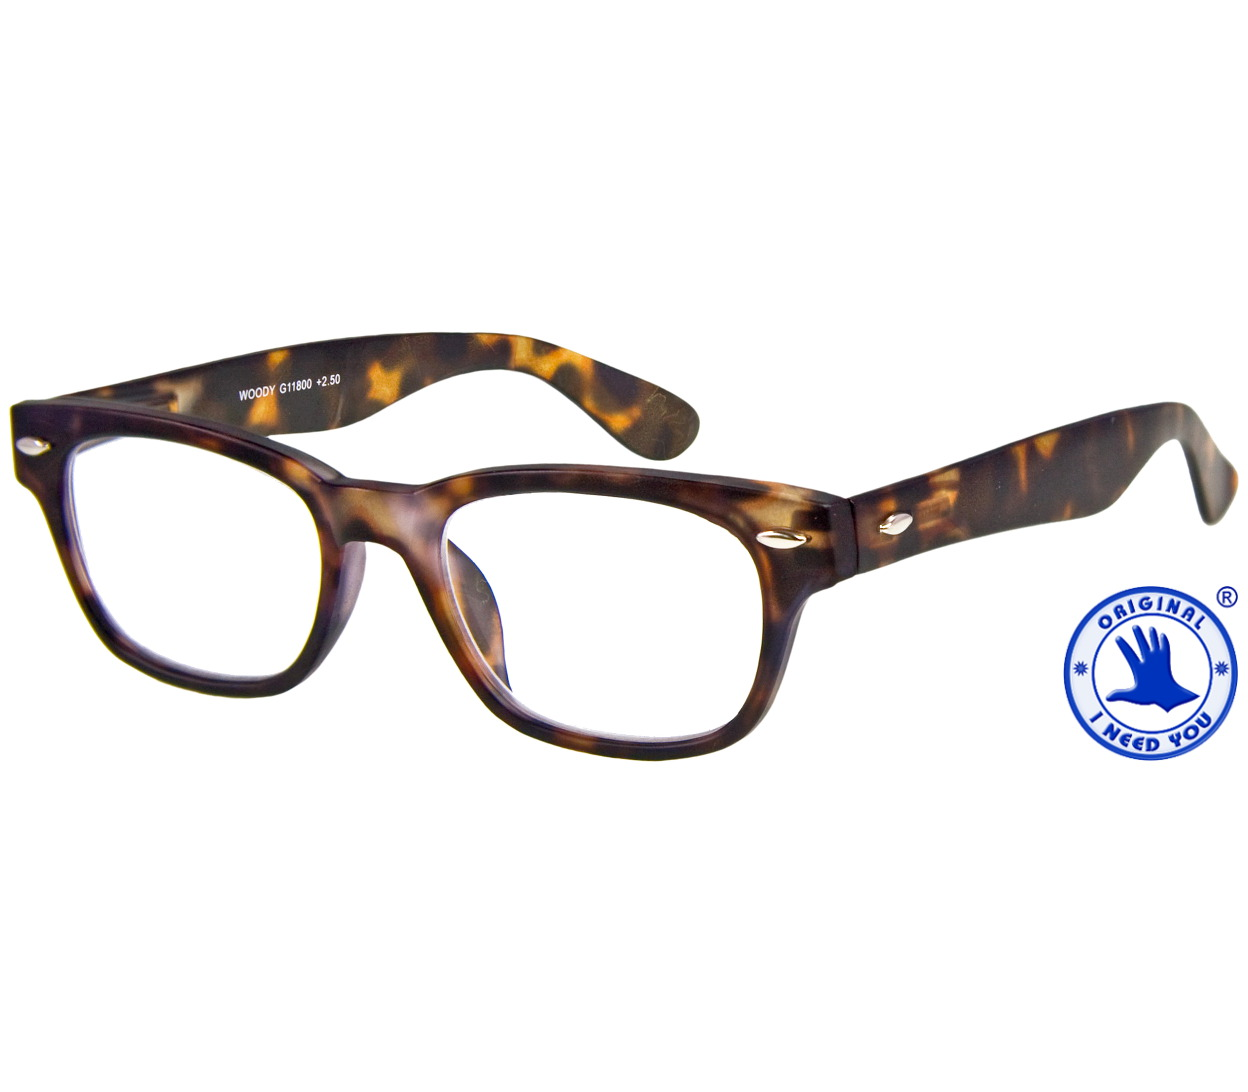 Main Image (Angle) - Woody (Tortoiseshell) Retro Reading Glasses